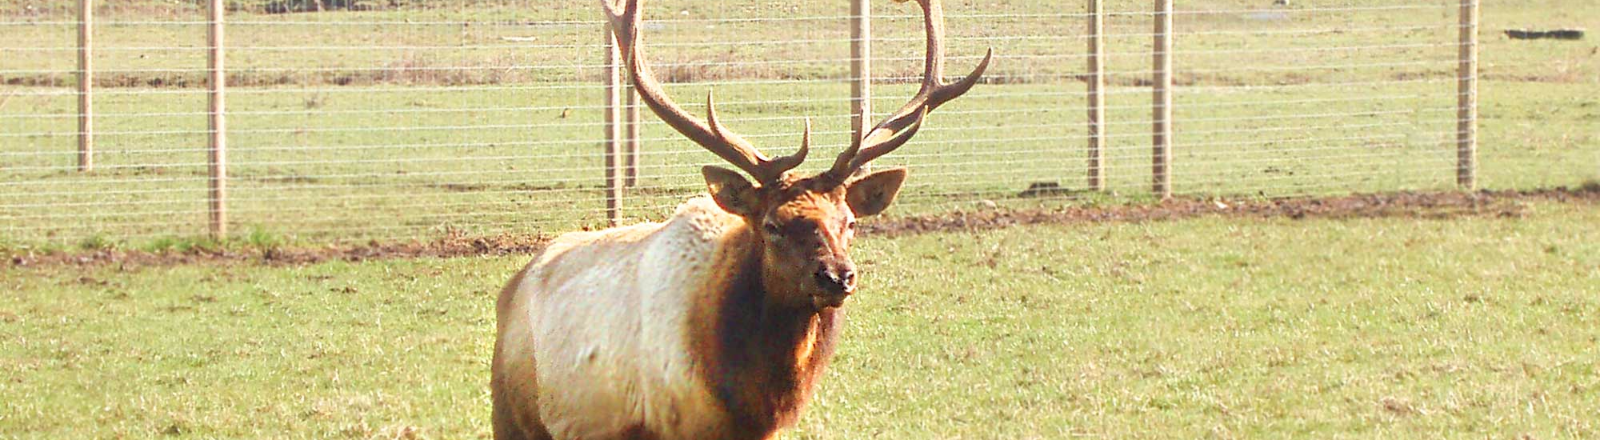 Majestic Rocky Mountain Bull Elk with antler rack running across fenced pasture at Rosse Posse Elk Farm in Molalla